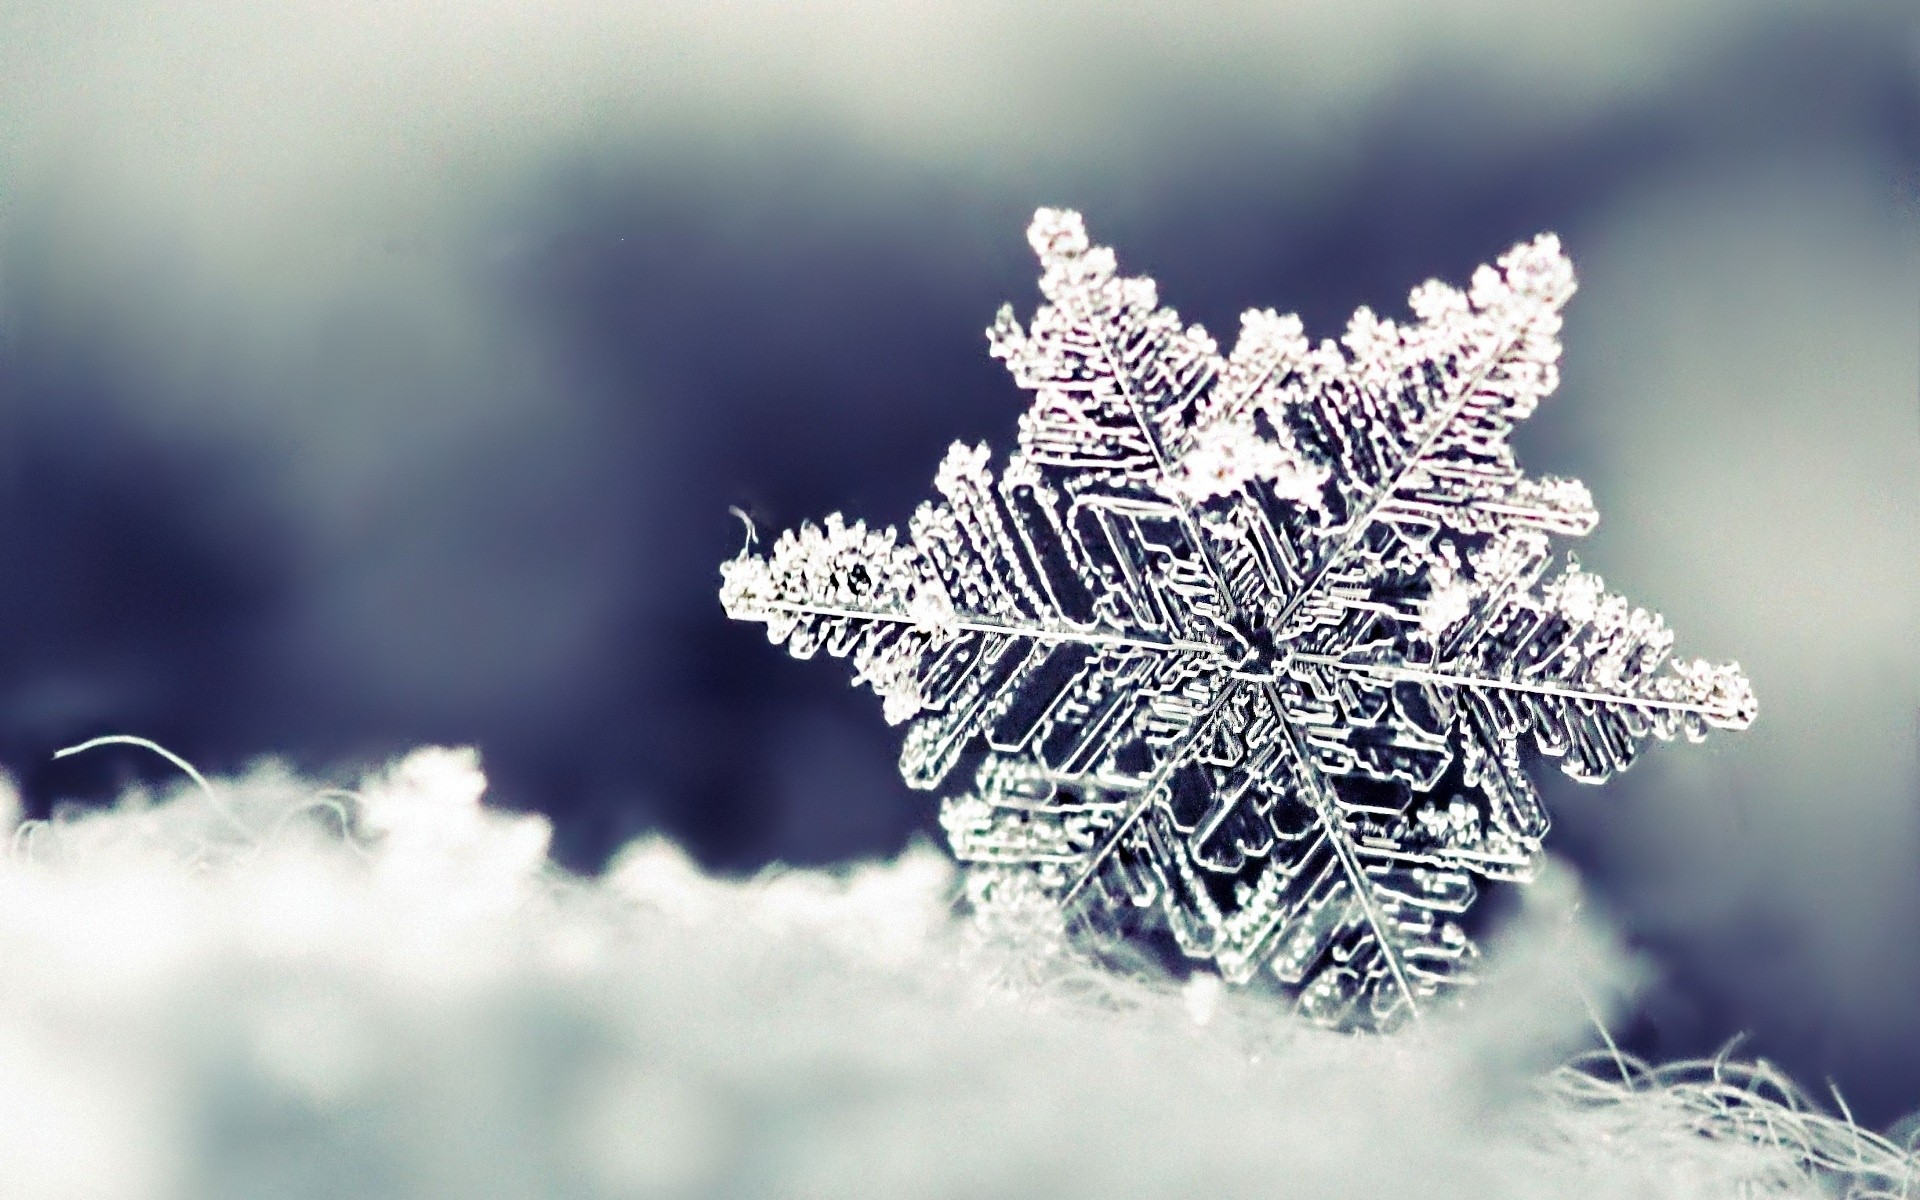 44 Images About Winter On We Heart It See More About